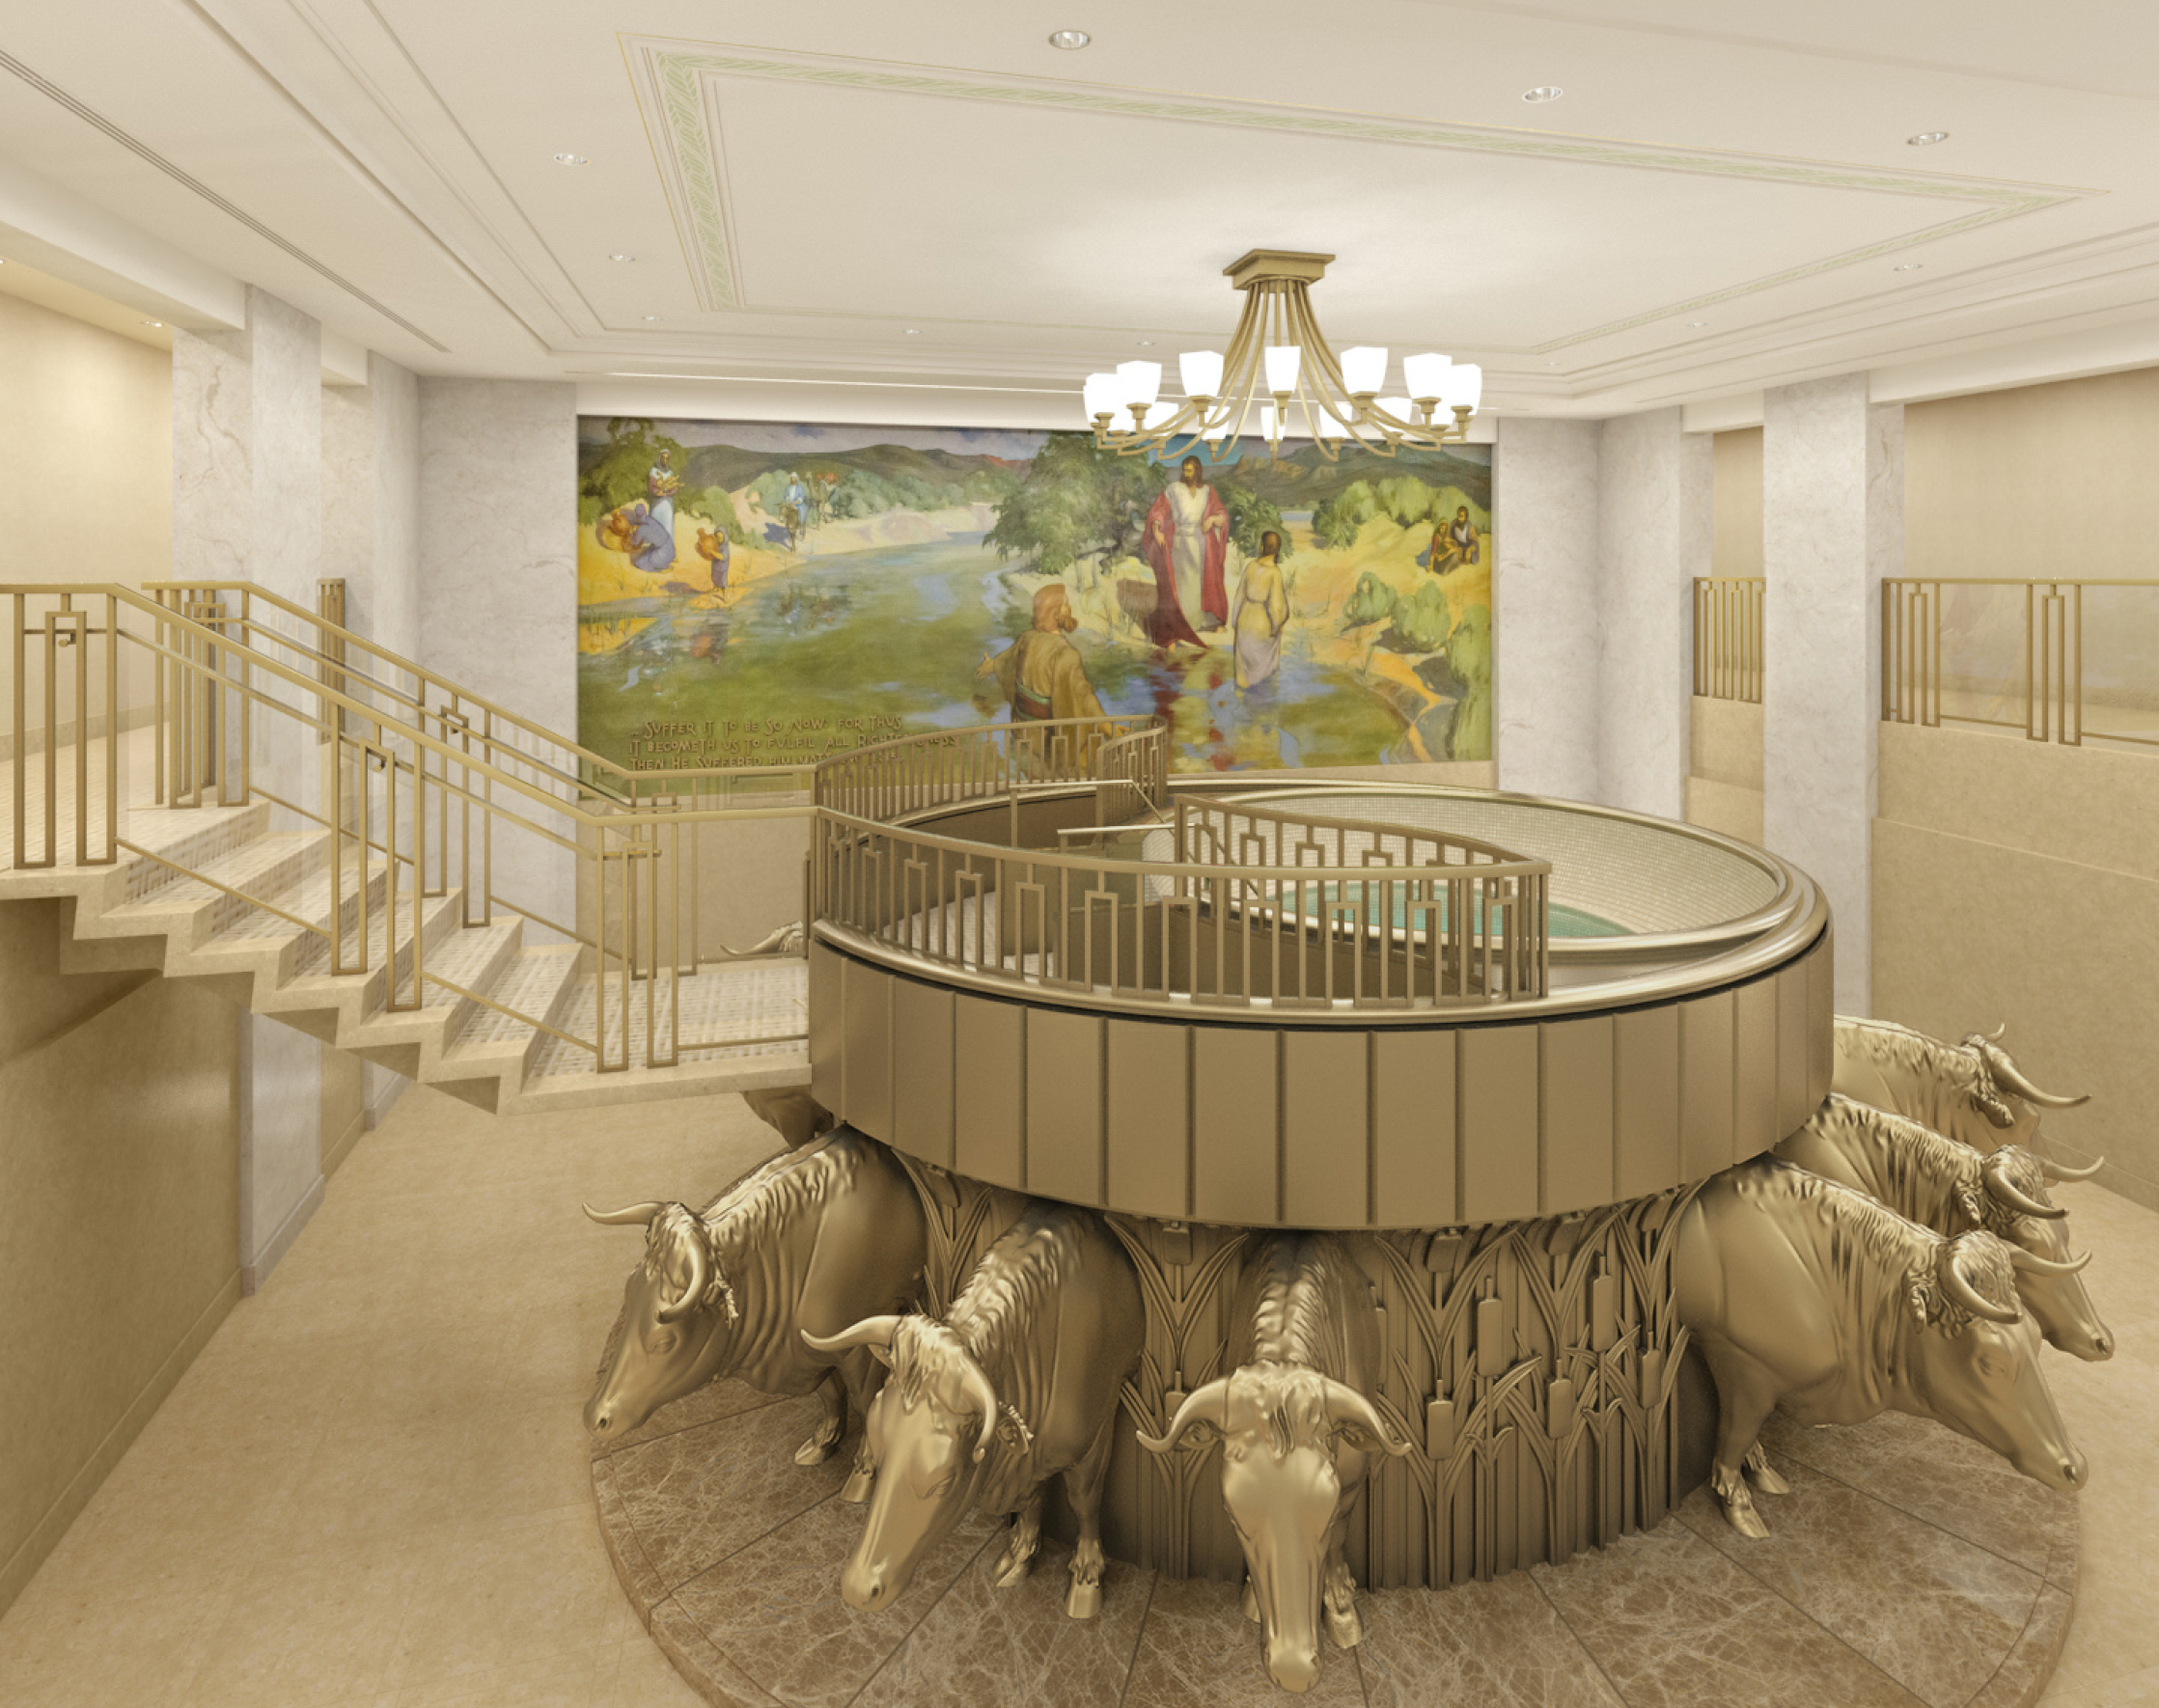 Rendering of baptistry in the Hamilton New Zealand Temple after renovation.